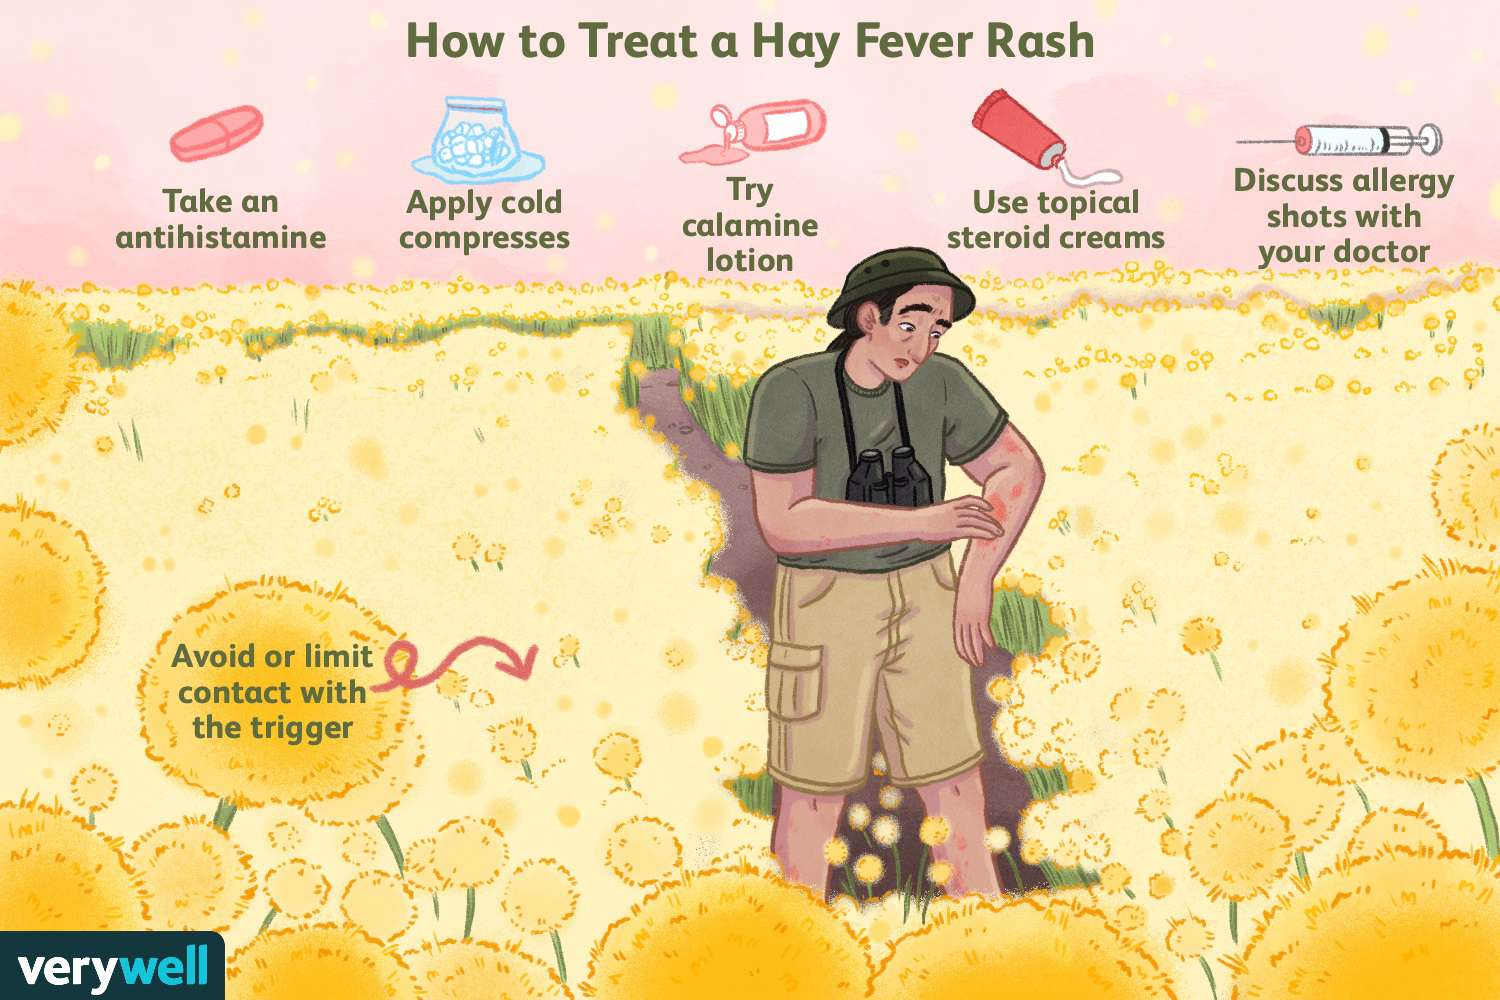 How to Treat a Hay Fever Rash